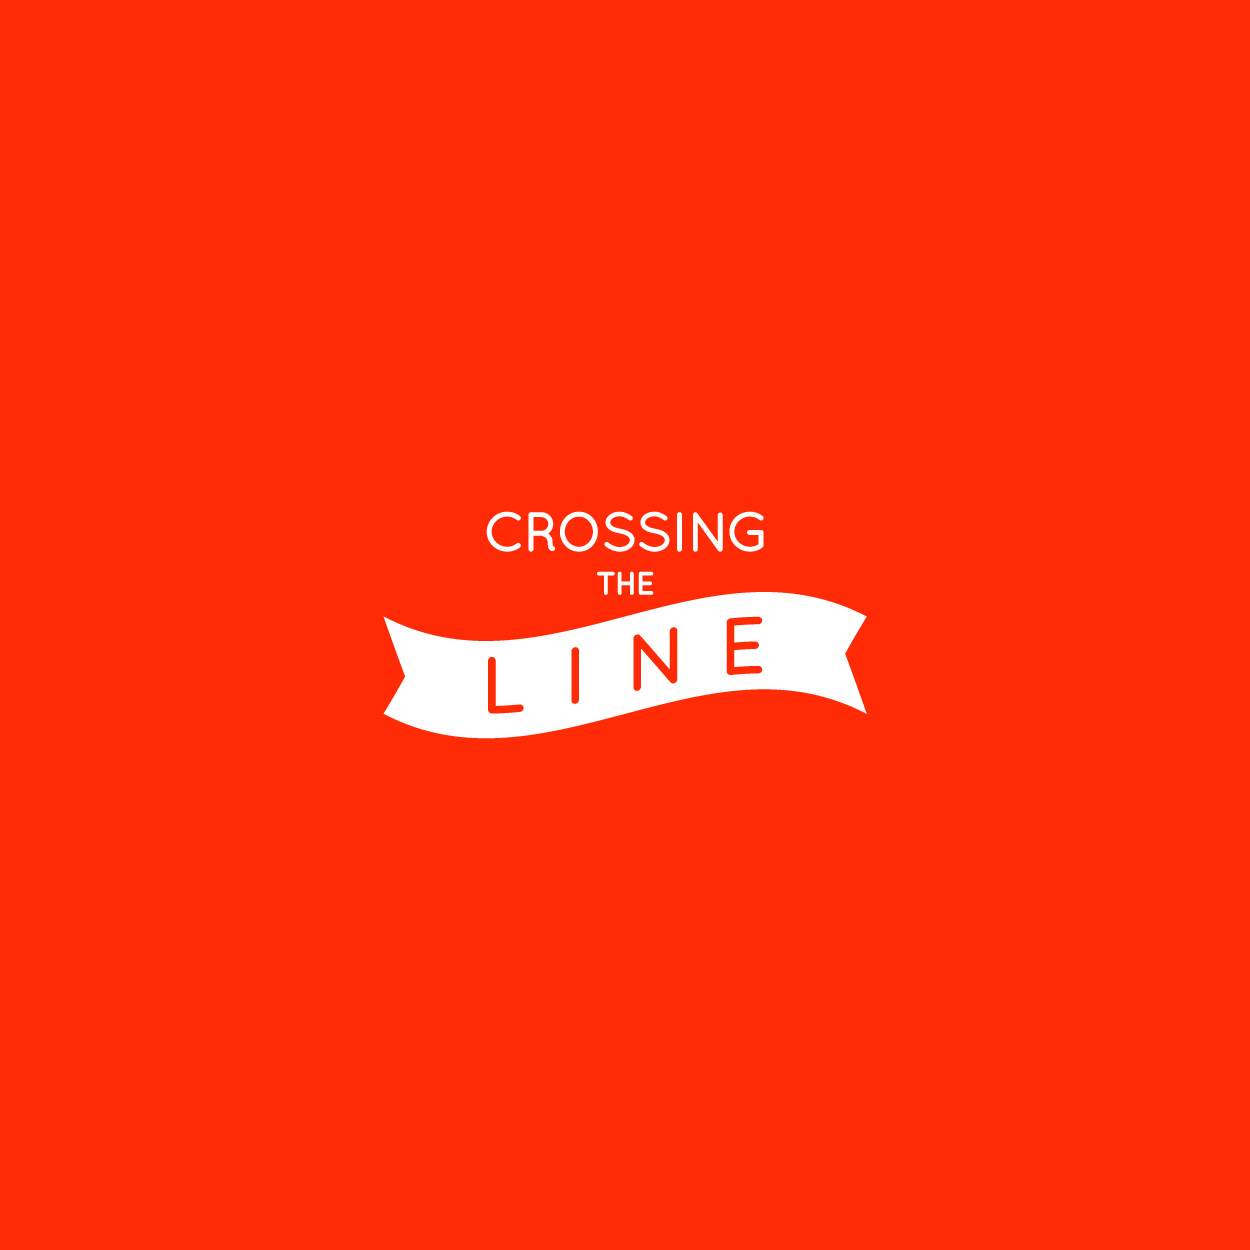 crossing-the-line-logo-bg